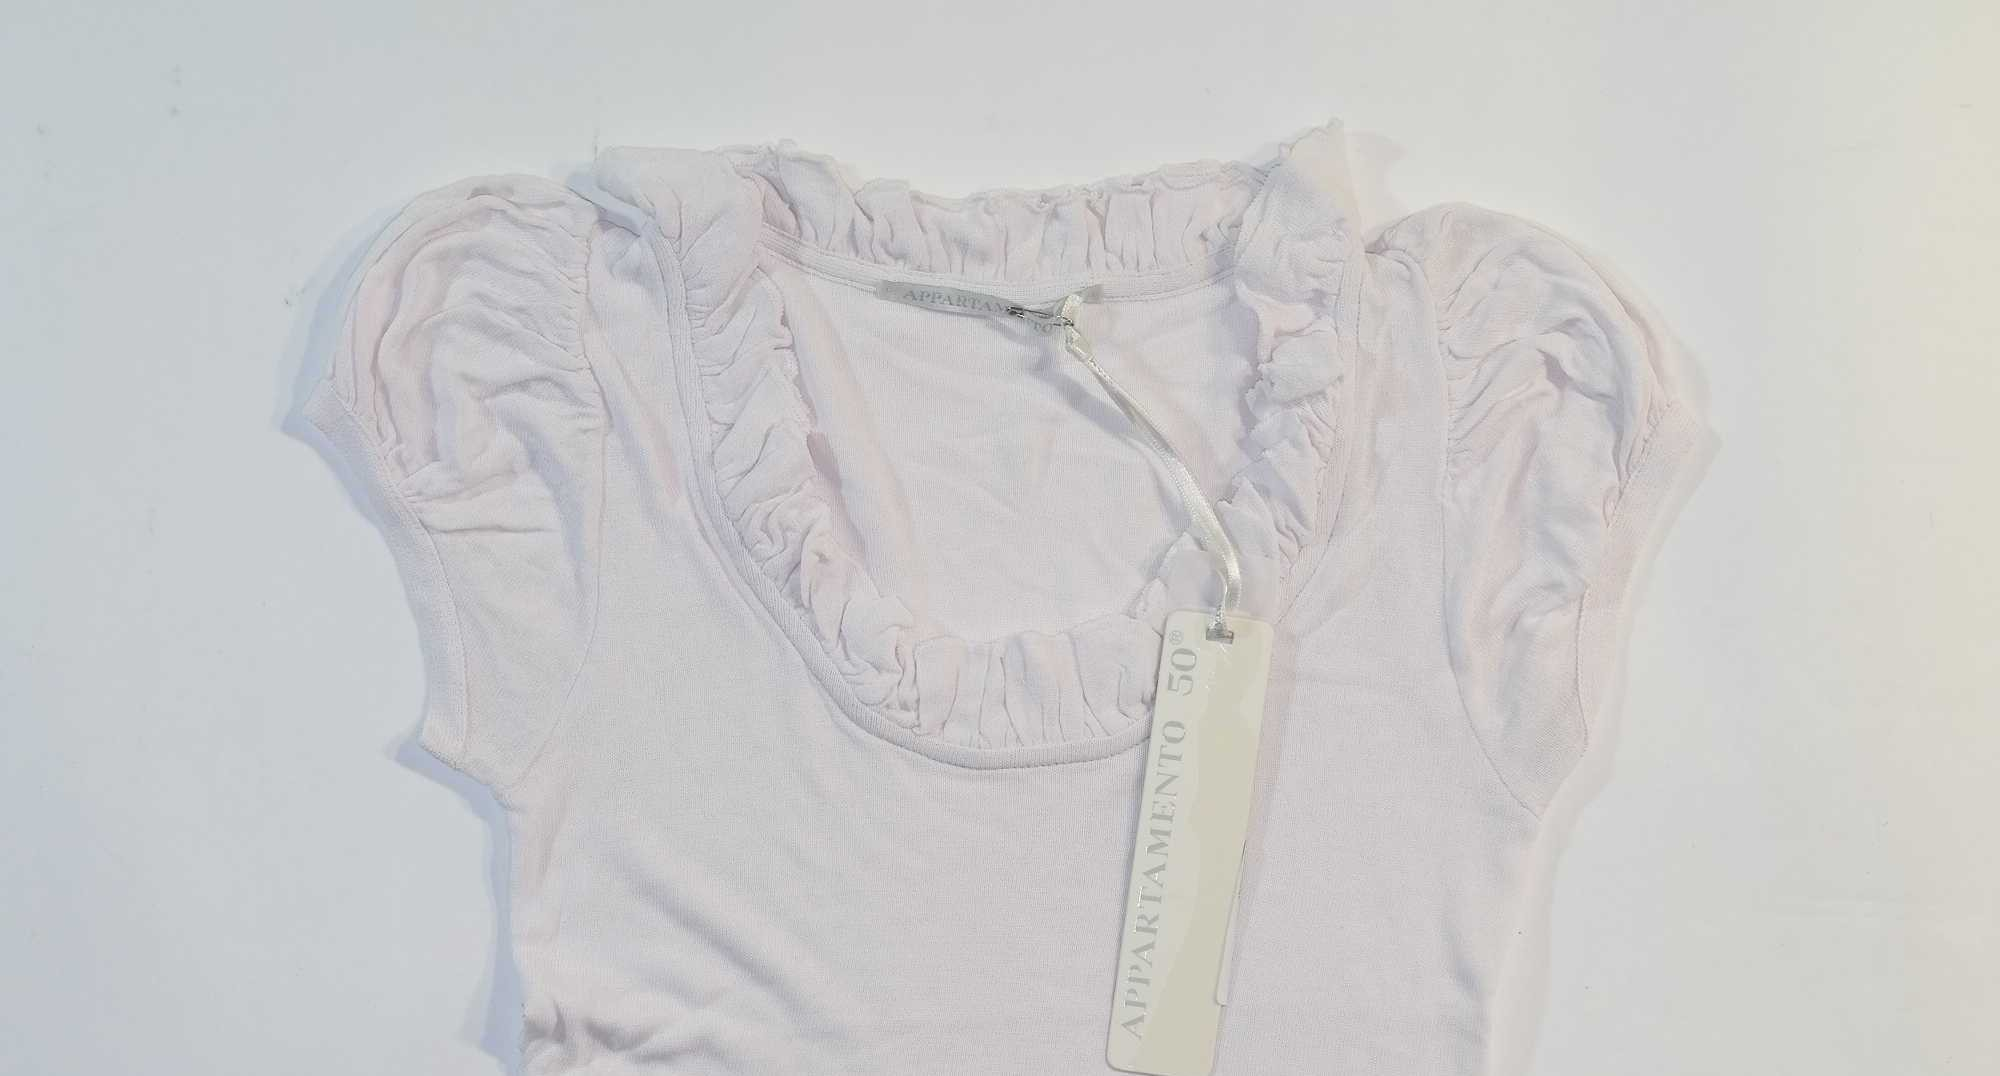 Tg3 shirt Femme Plat T Made Nouveau15pe21272389 In Italy 50 WCodeBrx